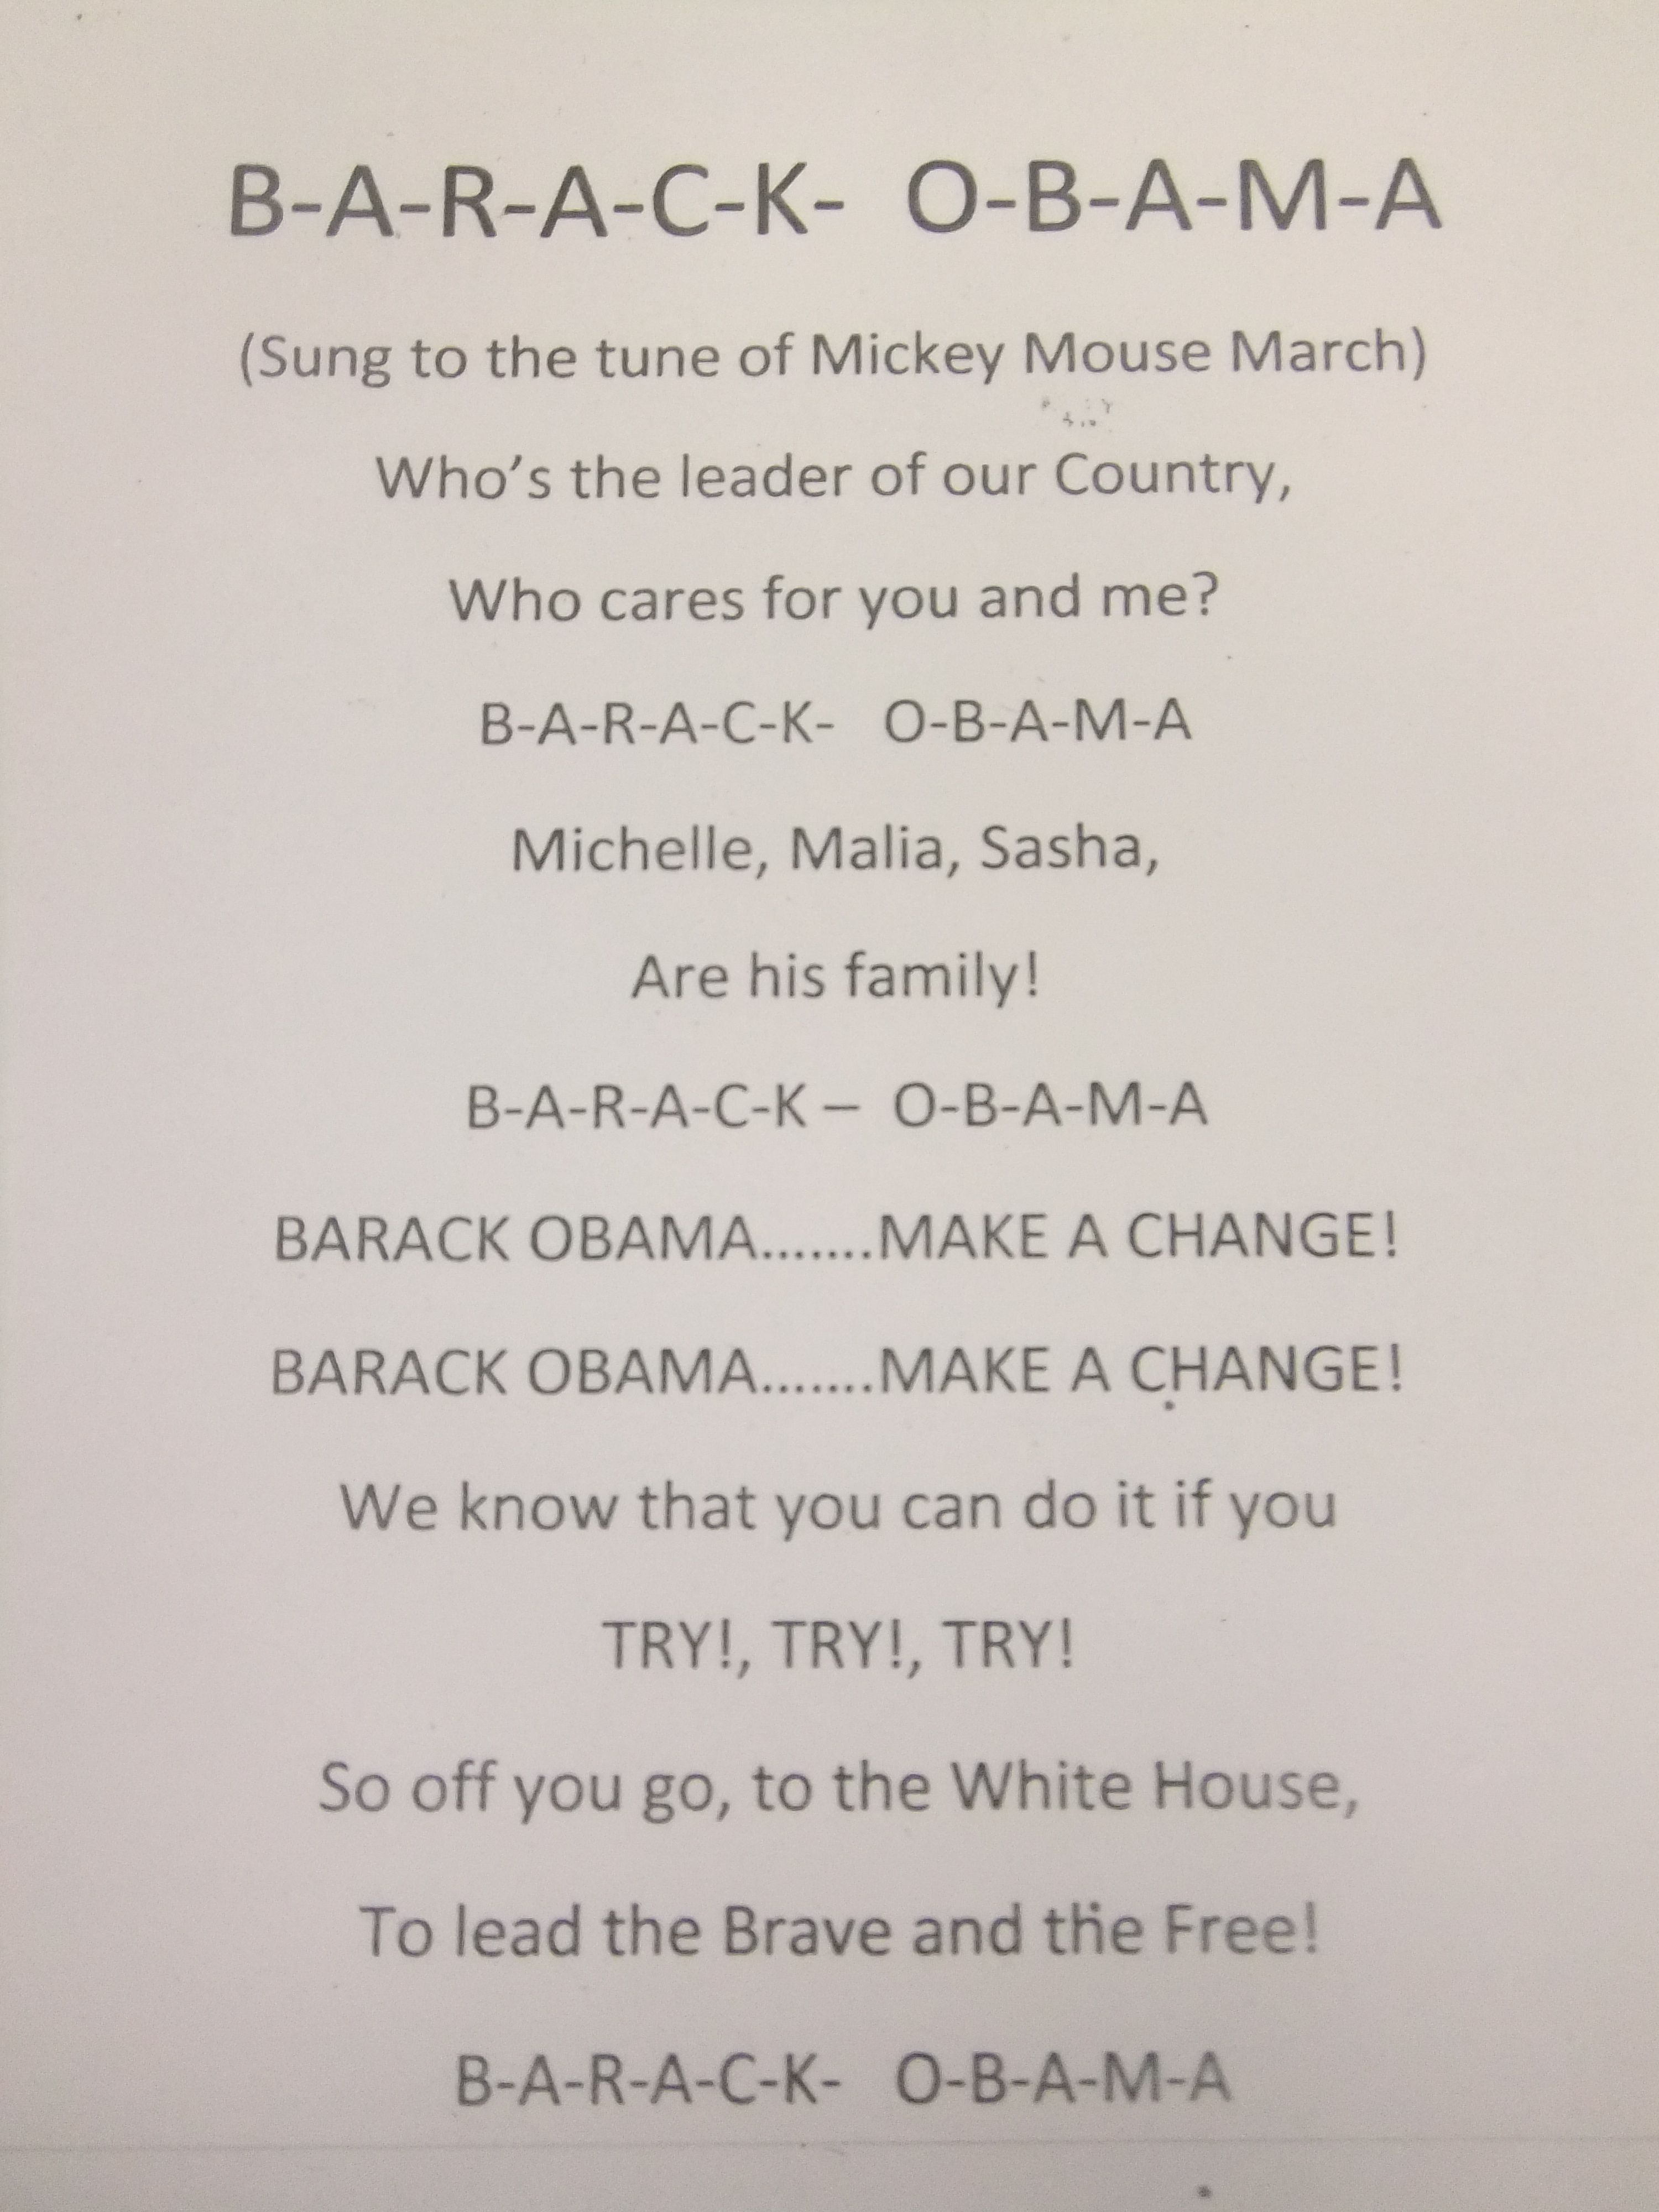 Thi I A Song Wrote When Obama Became President We Sing It Also Celebrate Our National Symbol American Singing Essay About Barack Biography On Leadership